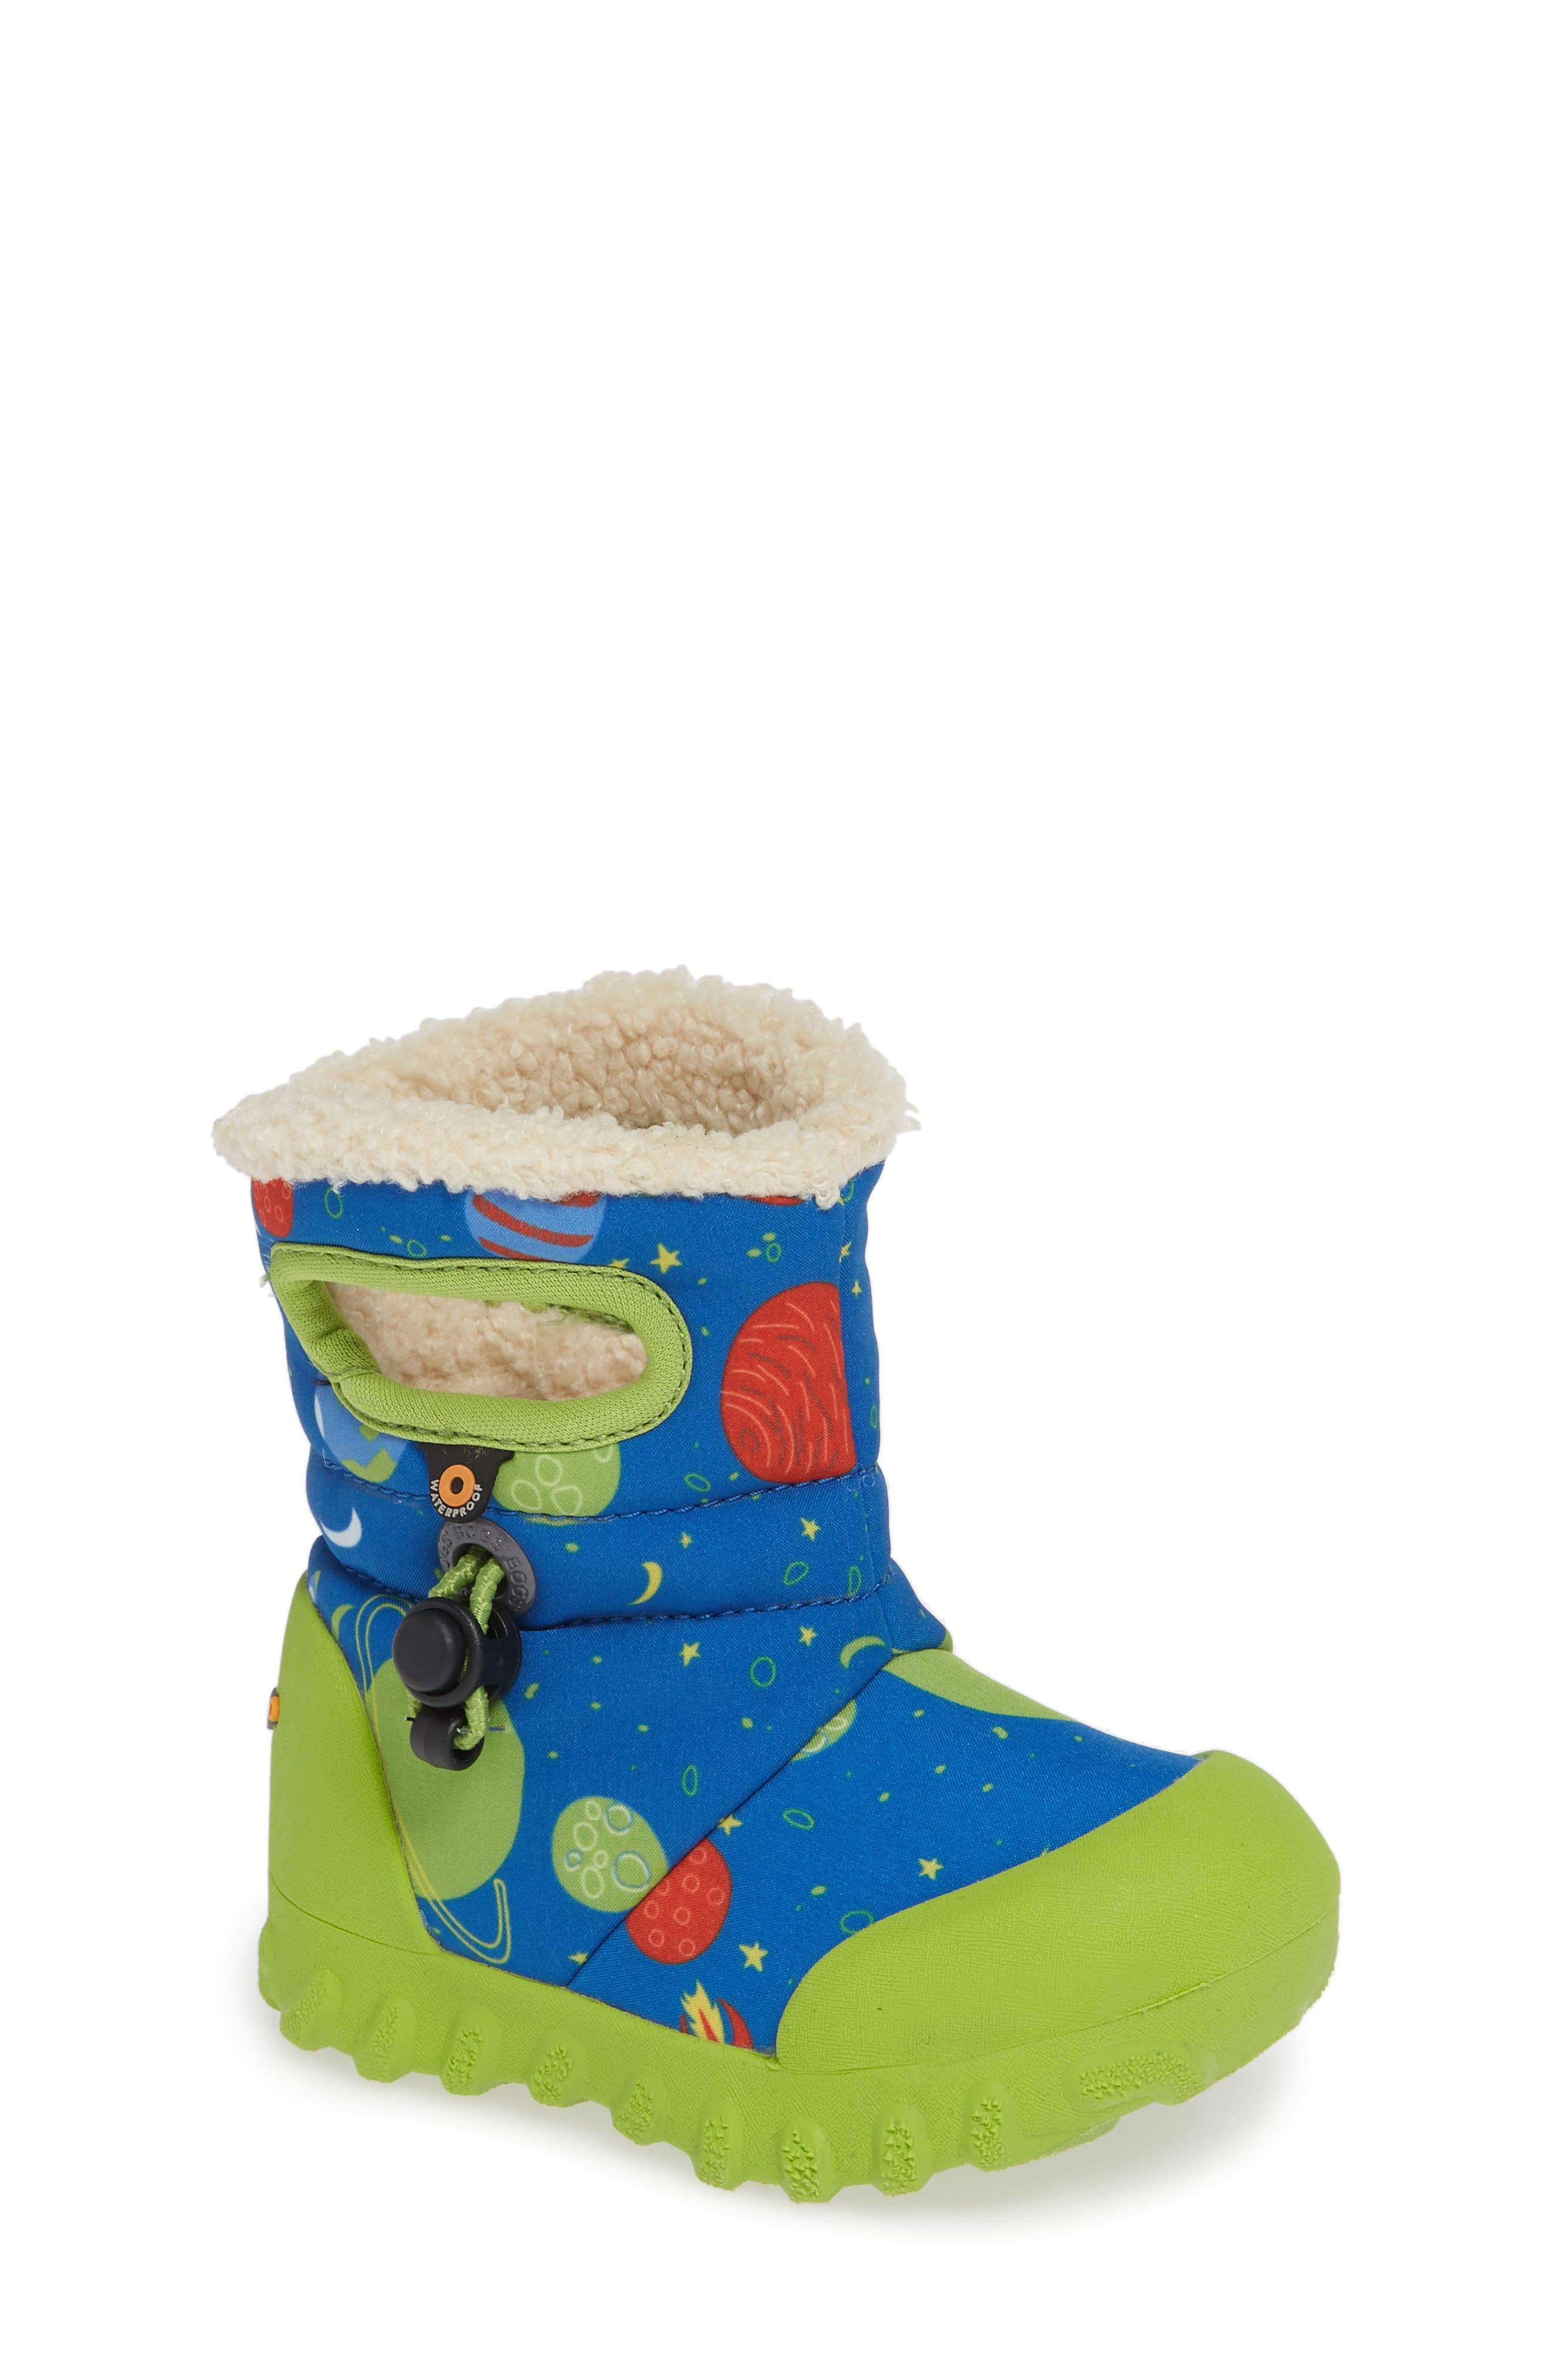 B-MOC Space Waterproof Insulated Faux Fur Boot,                             Main thumbnail 1, color,                             BLUE MULTI